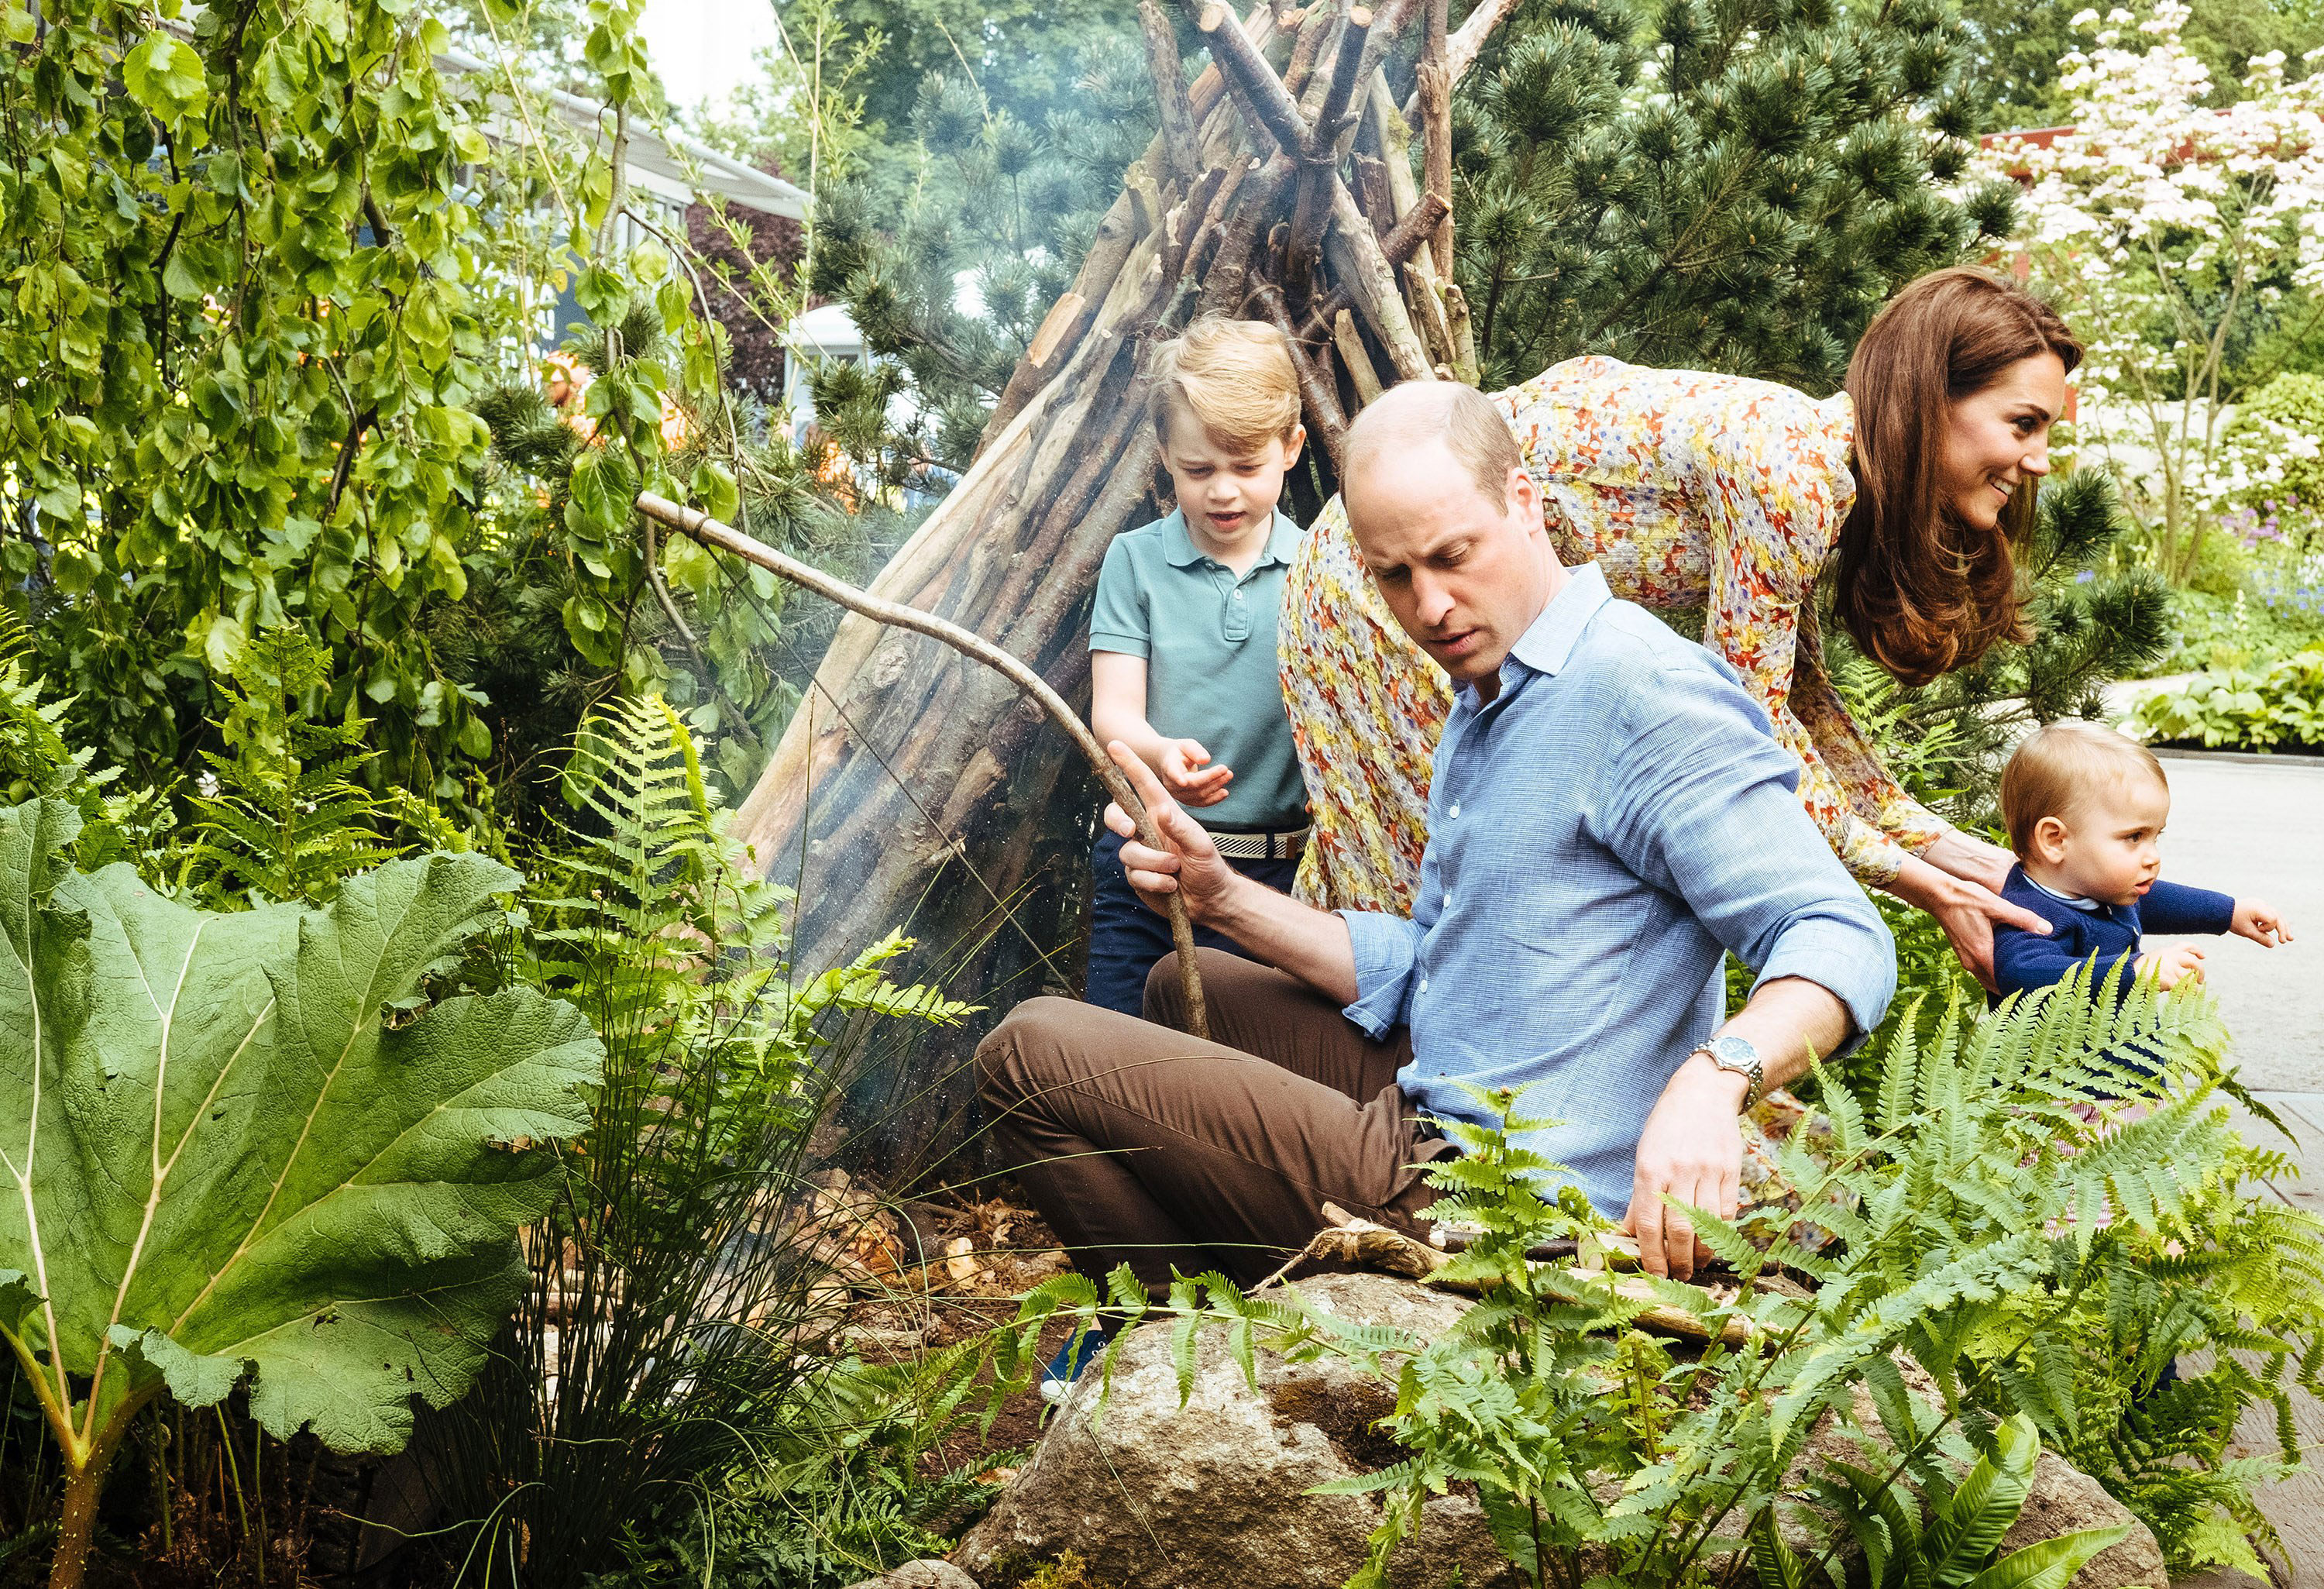 Prince William, Duchess Kate and Kids Play in the Garden She Designed at Chelsea Flower Show - William, 36, taught George how to make a fire while Kate held onto her youngest son.